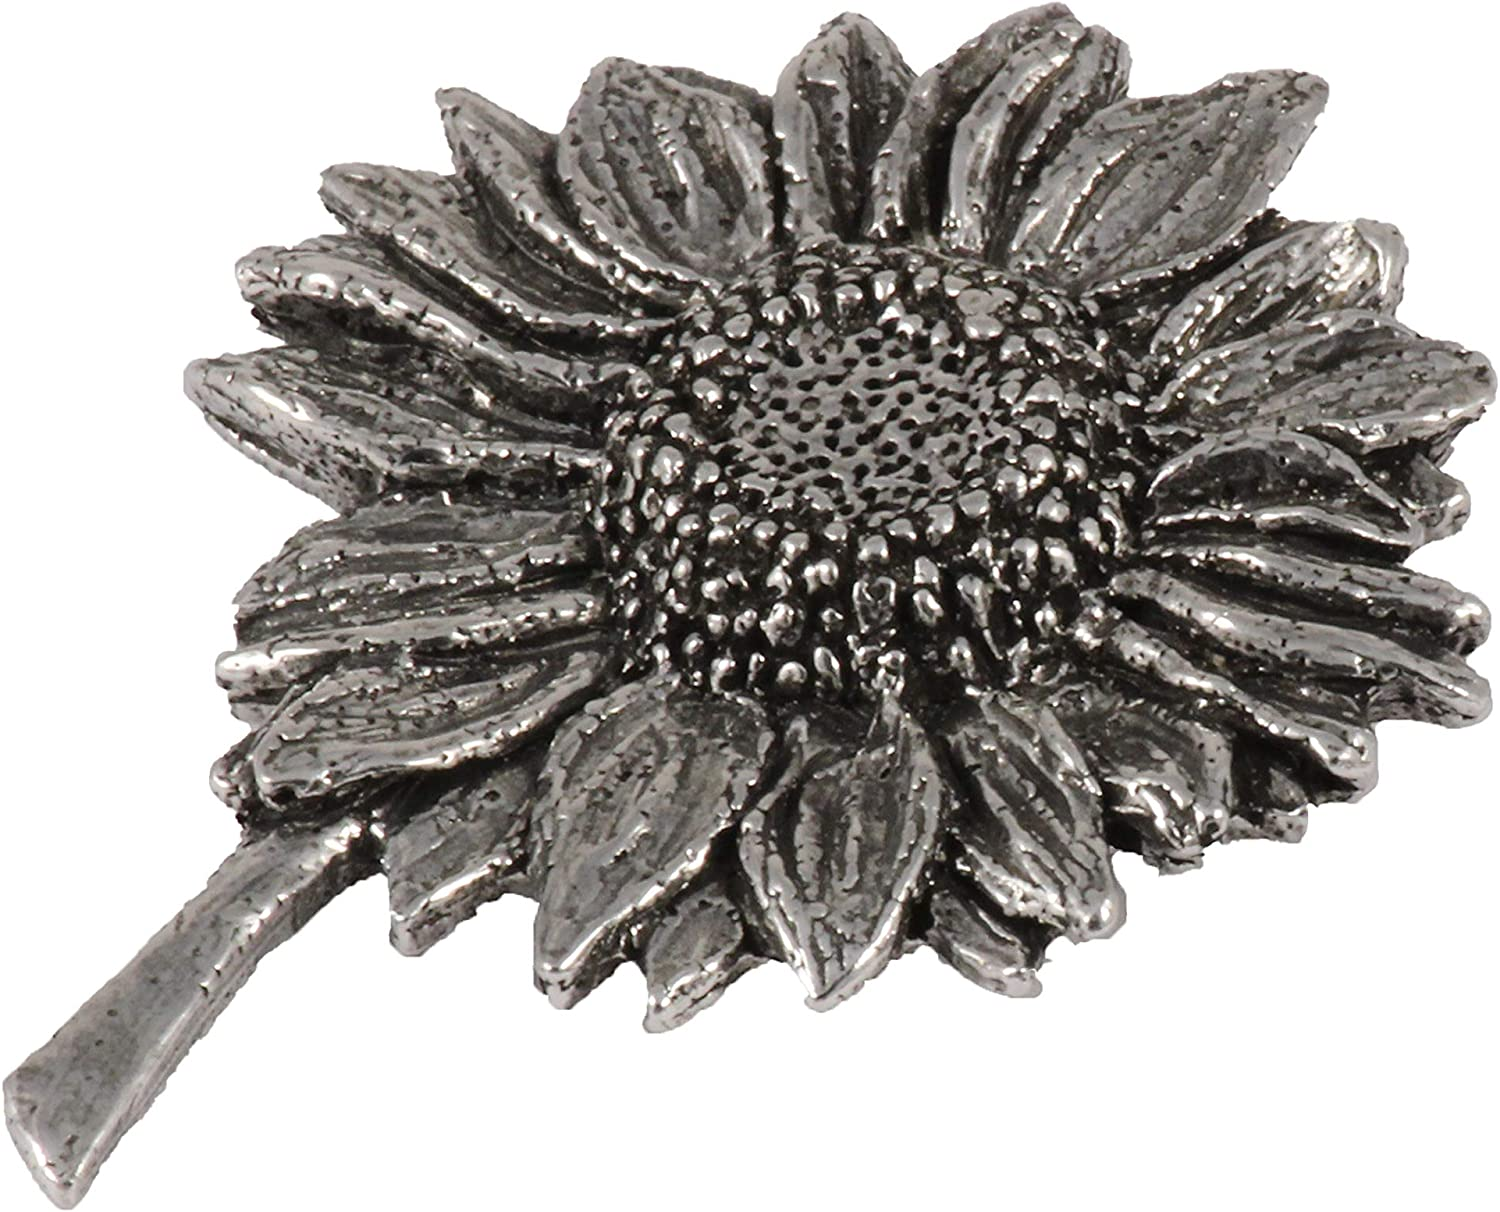 Creative Pewter Designs - Plant Lapel Brooch Pin, Handmade in The USA - Available in Pewter, Copper & 22k Gold Plated & Hand Painted